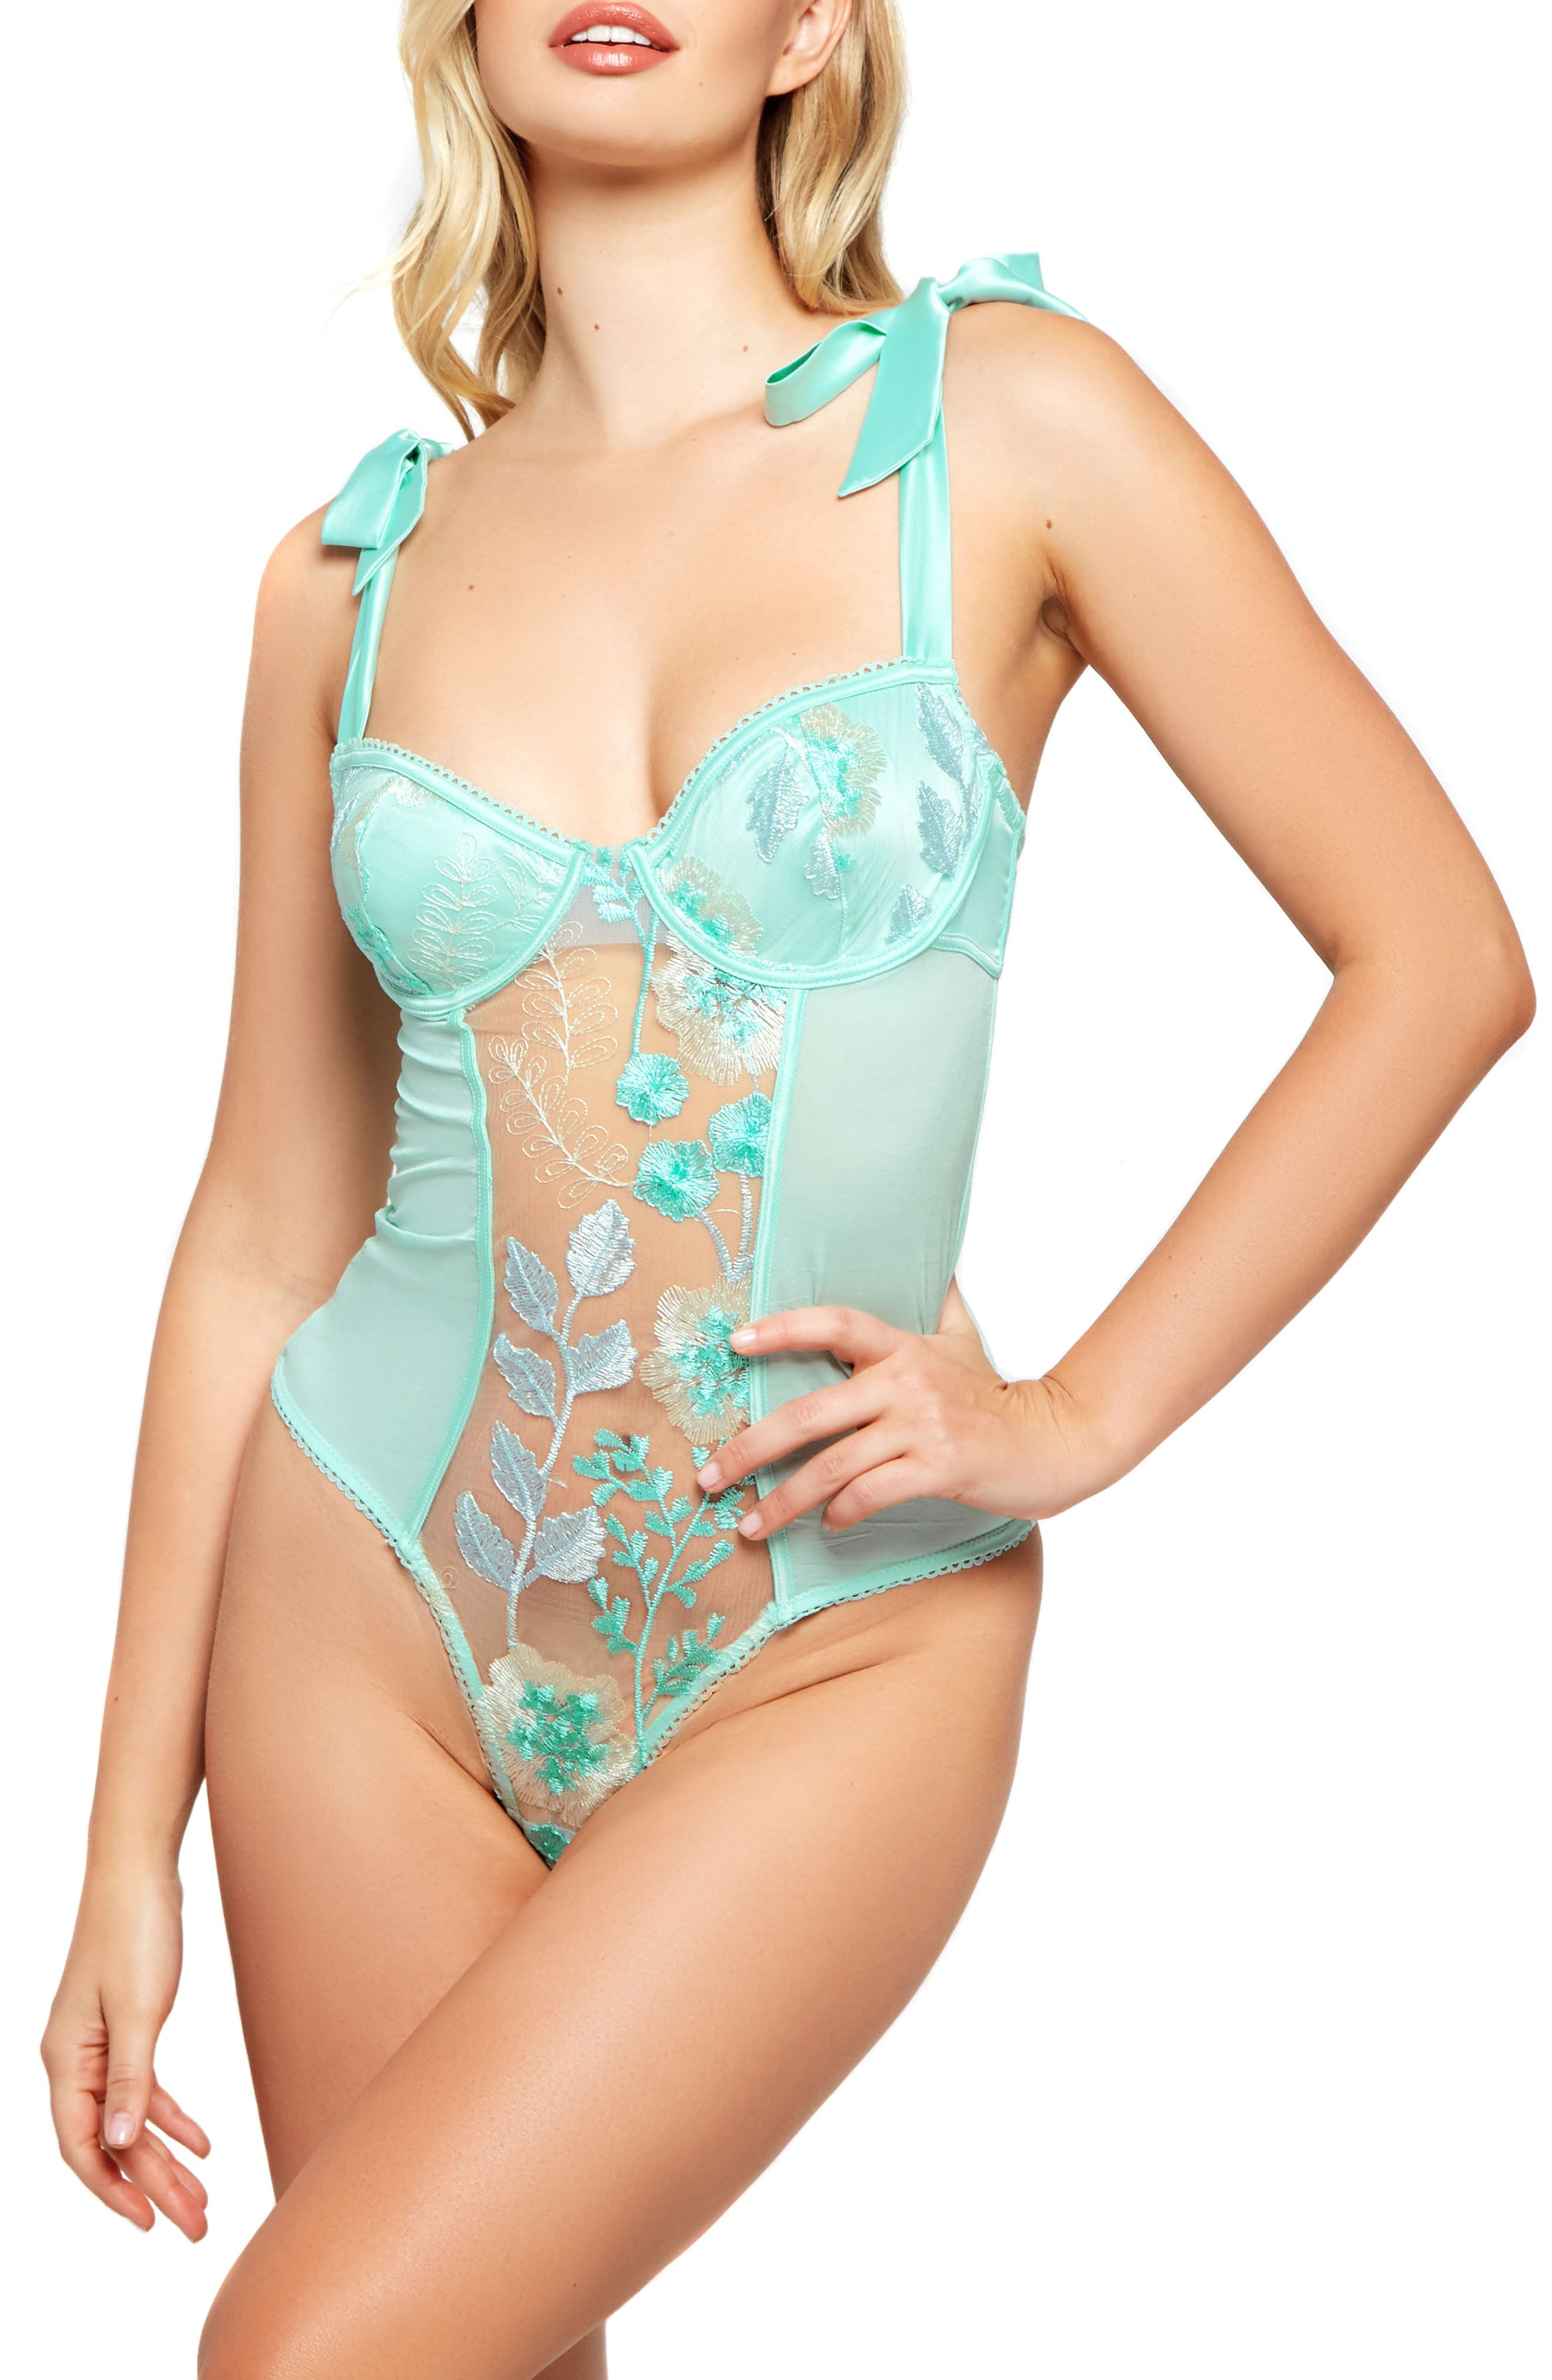 Embroidered Lace Underwire Teddy